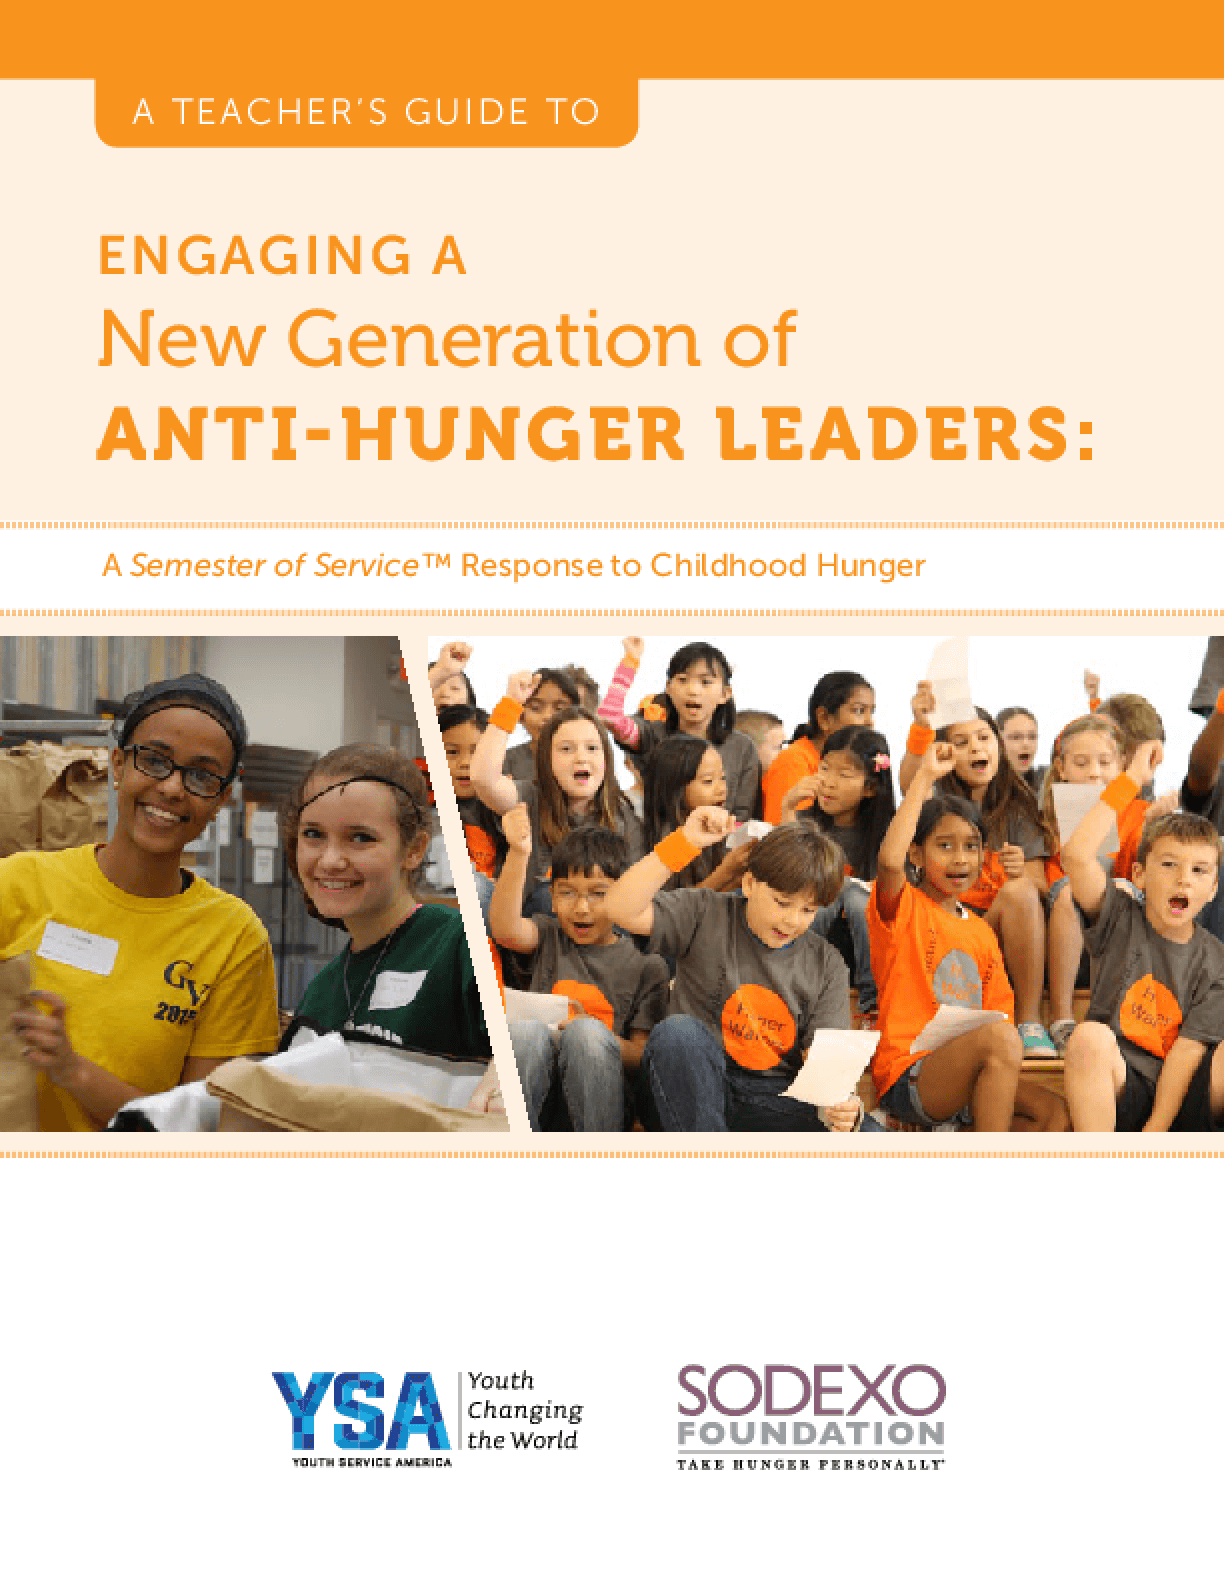 A Teacher's Guide to Engaging a New Generation of Anti-Hunger Leaders: A Semester of Service Response to Childhood Hunger